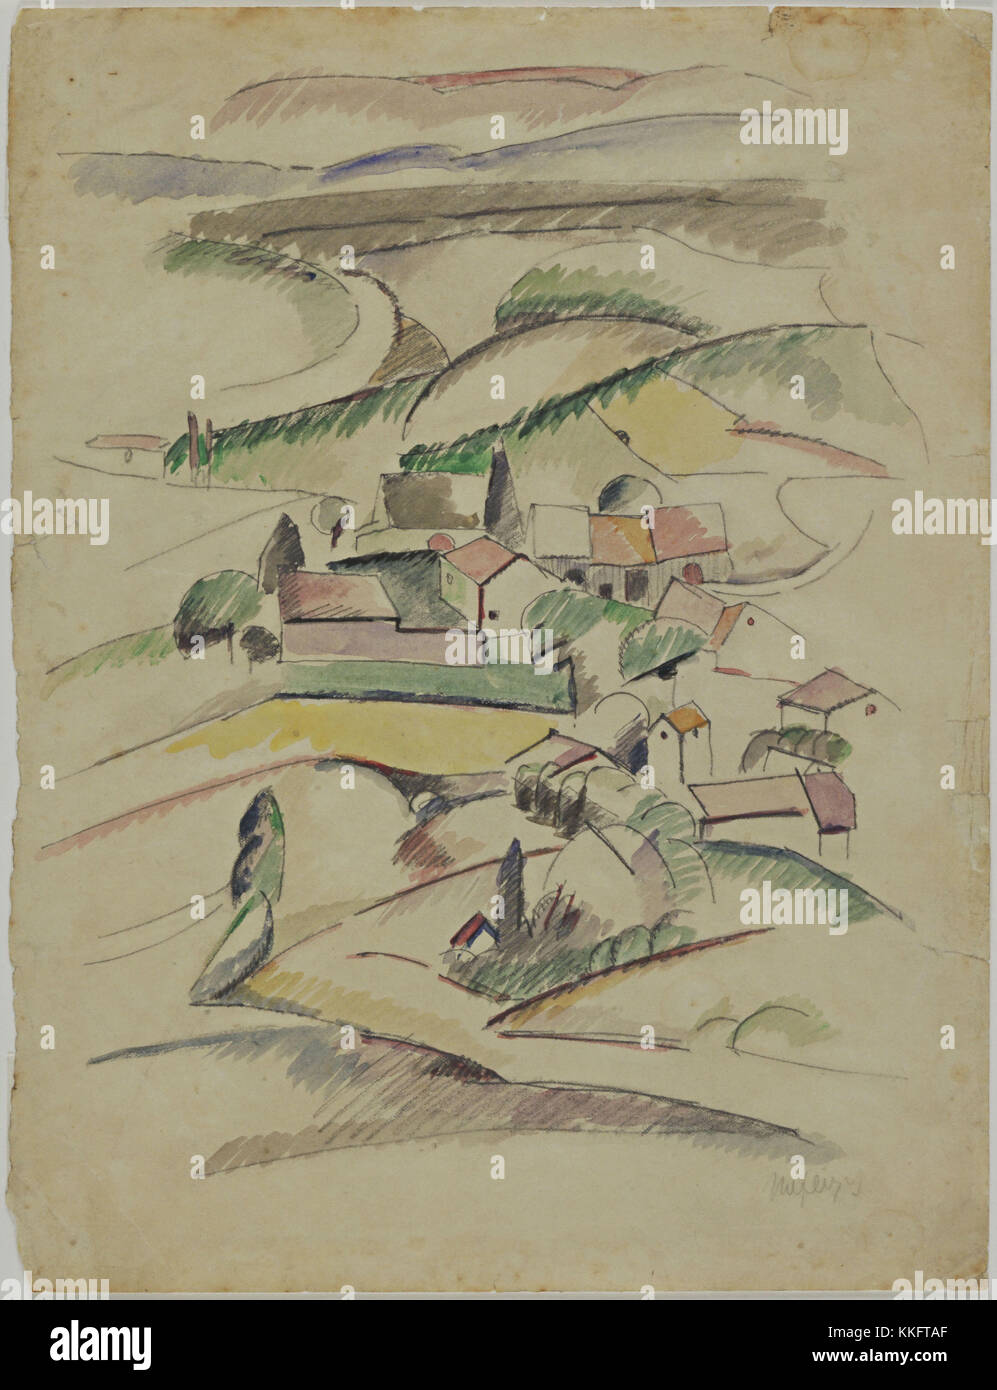 Albert Gleizes. (French, 1881-1953). Houses in a Valley. (c. 1910). Watercolor and pencil on paper, 12 1/4 x 9 3/8' - Stock Image